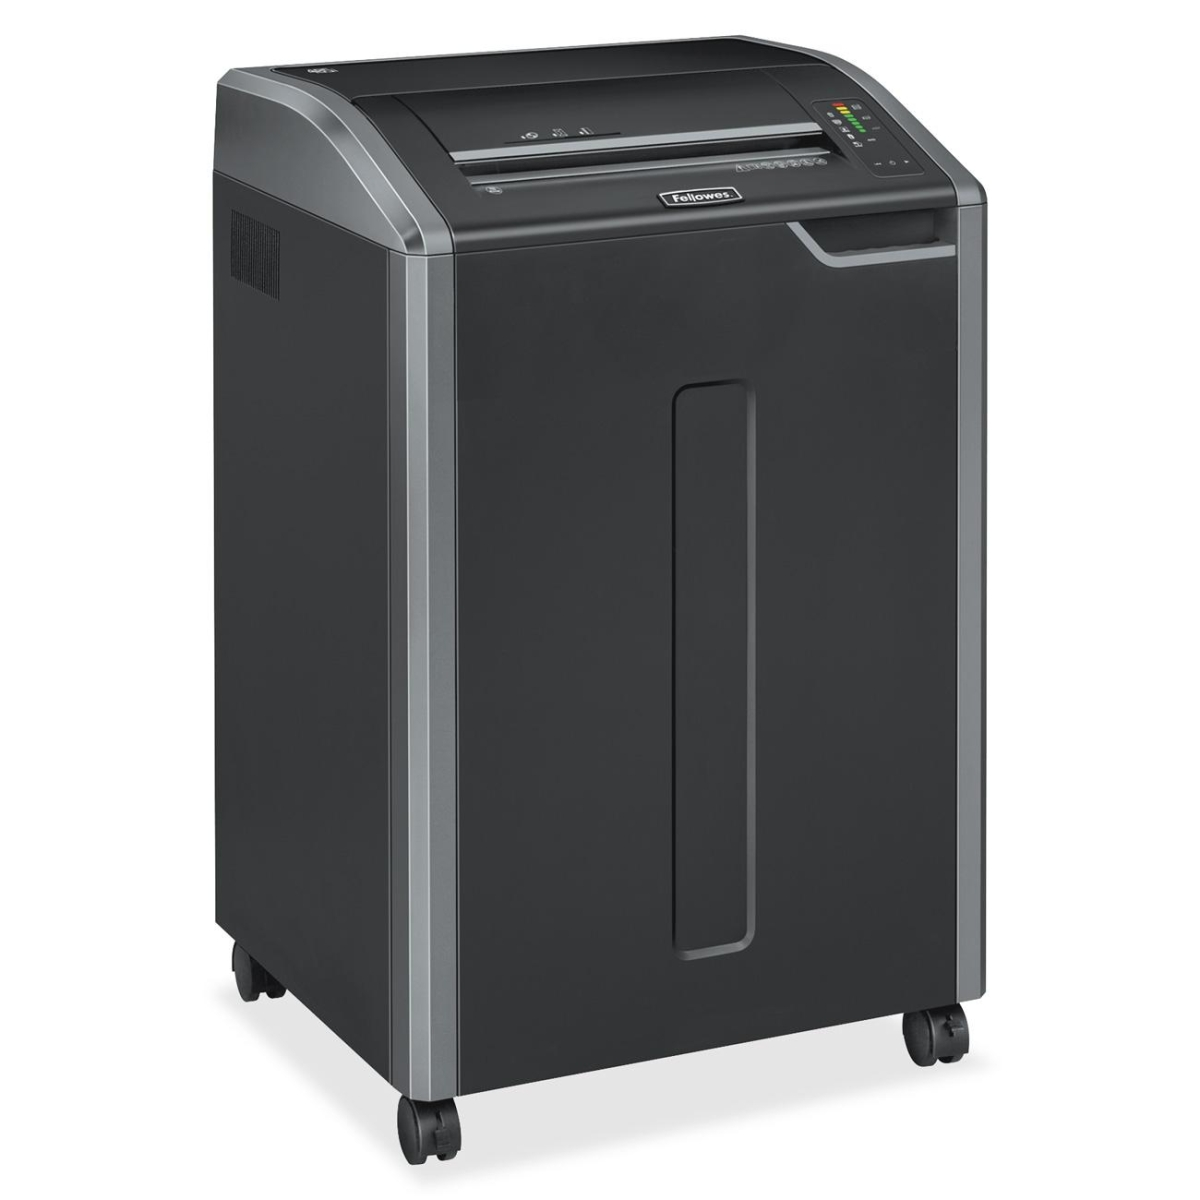 Powershred 485I Strip-Cut Shredder - Continuously shreds 38 sheets of paper per pass into 37 (7/32 Security Level P-2) strip-cut particles for basic security